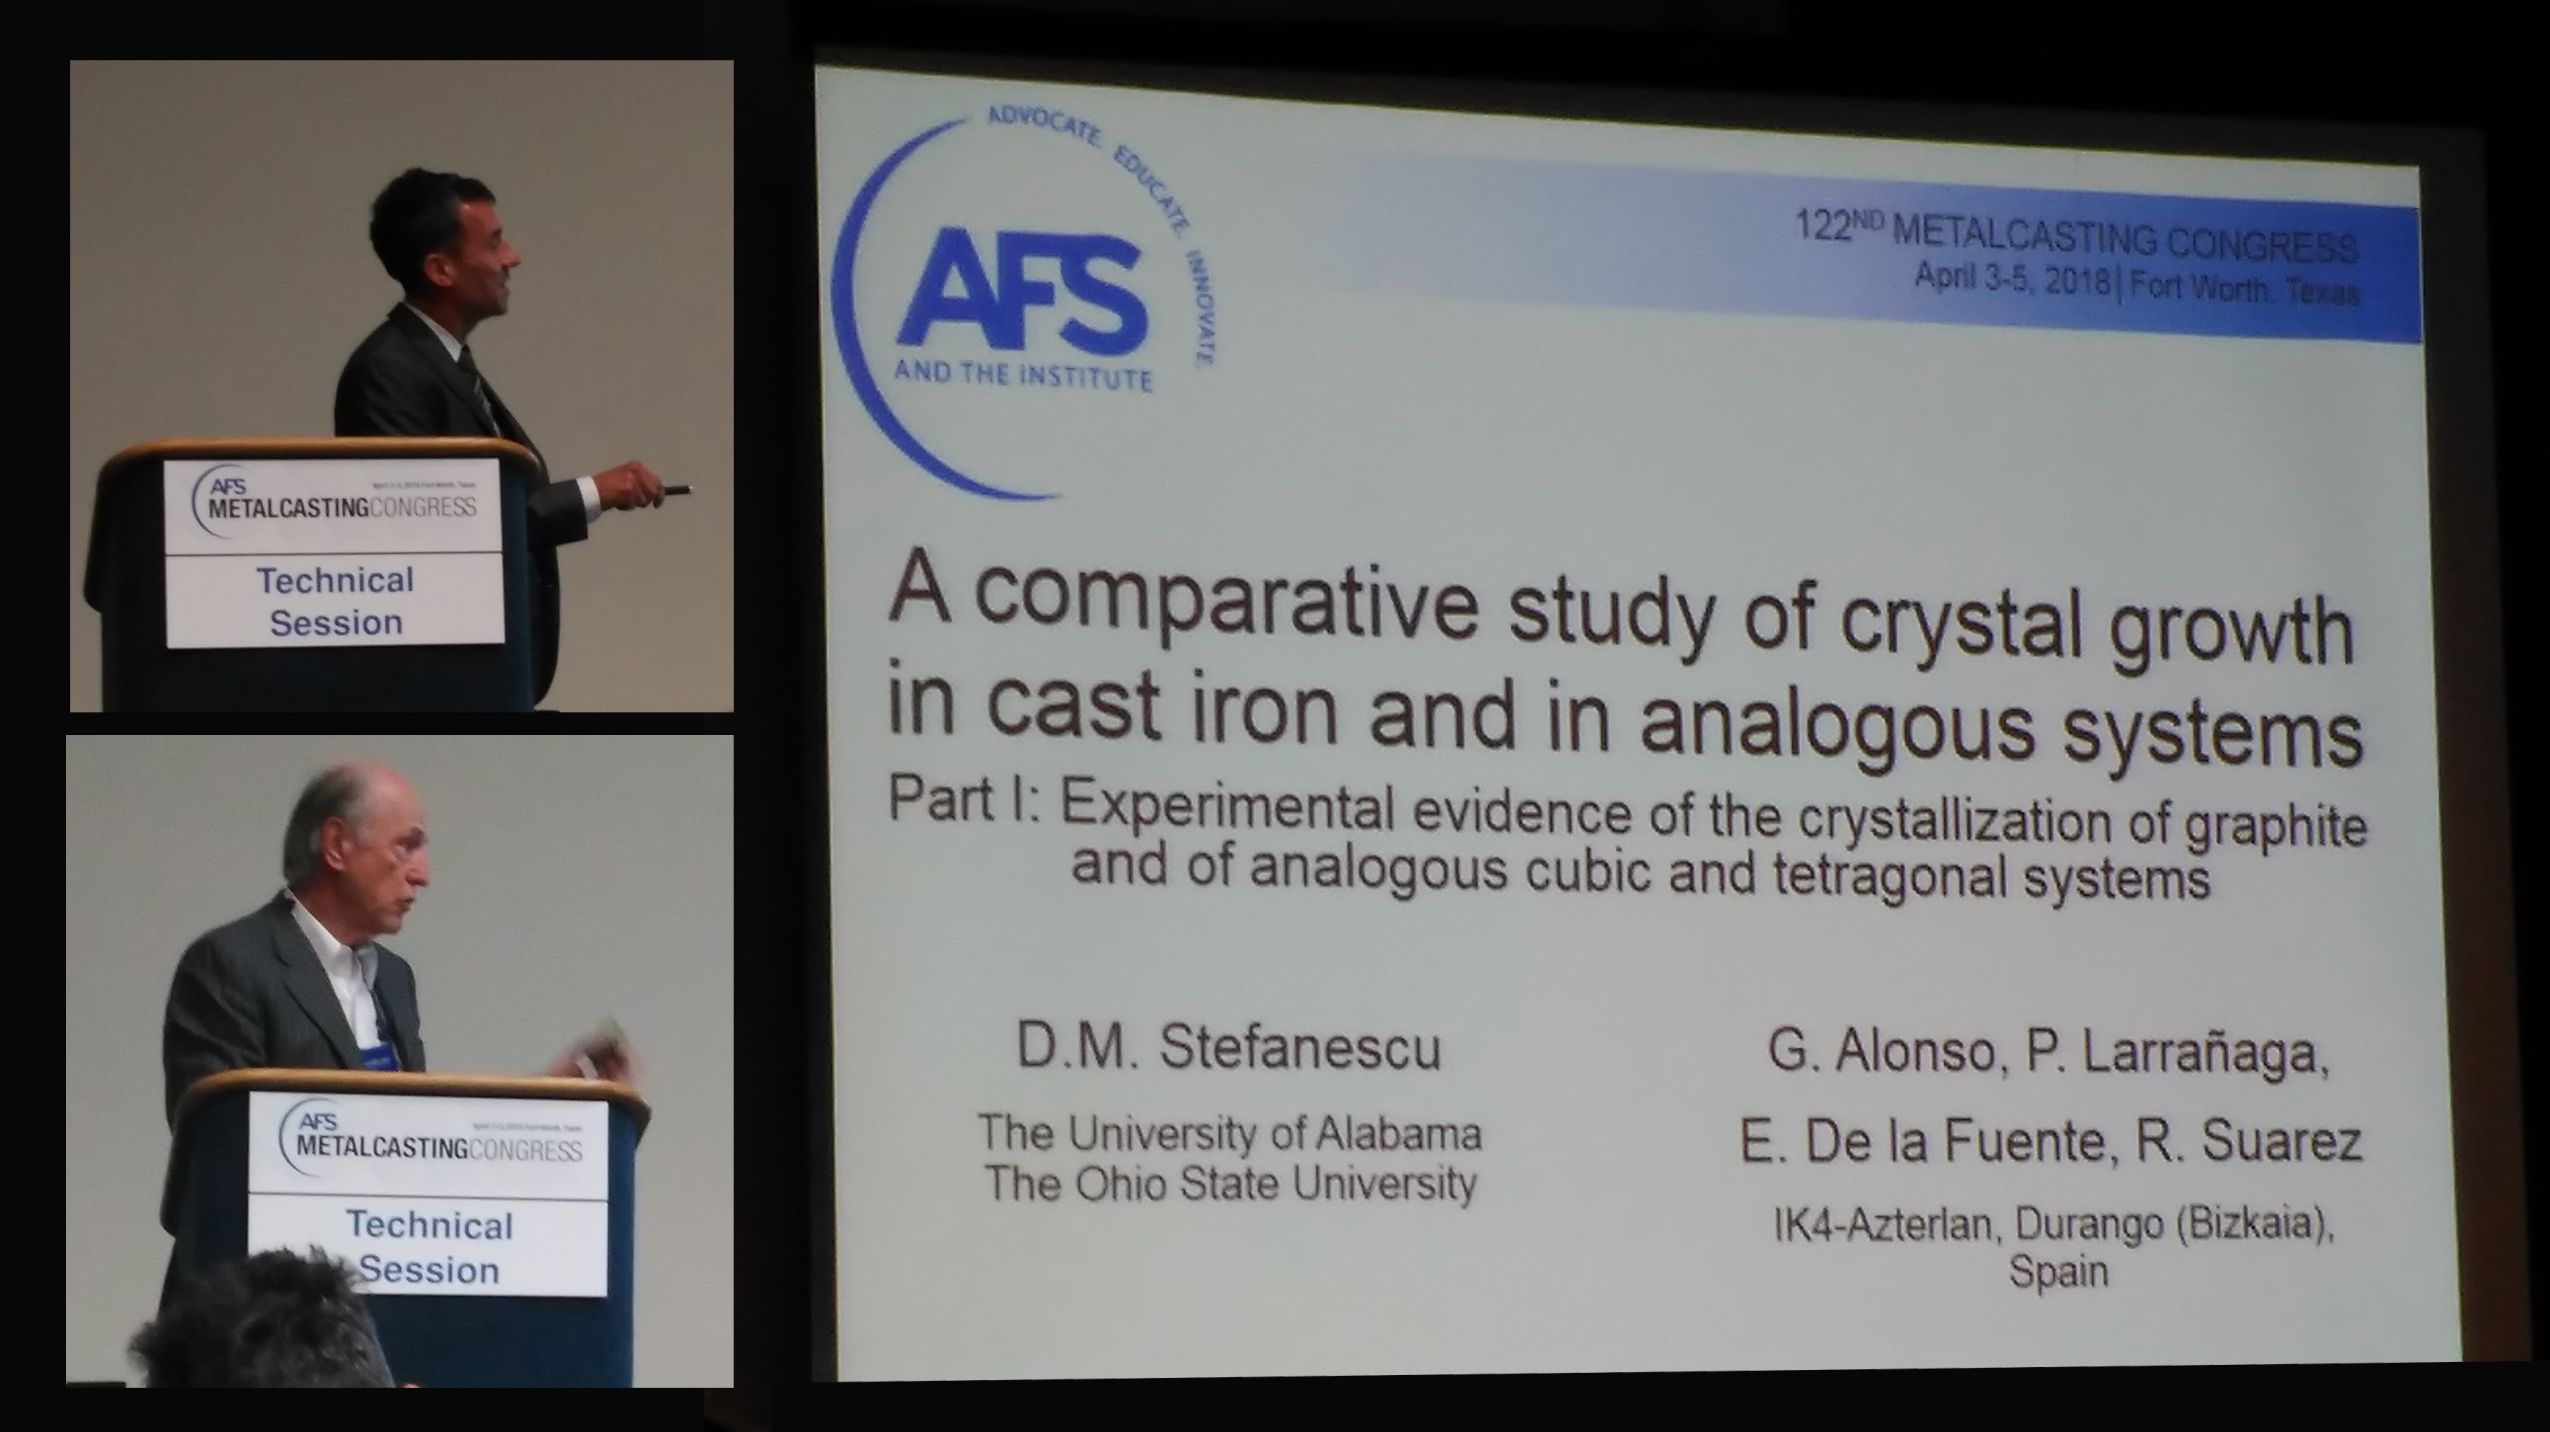 Stefanescu and Alonso at the AFS Metalcasting Congress 2018